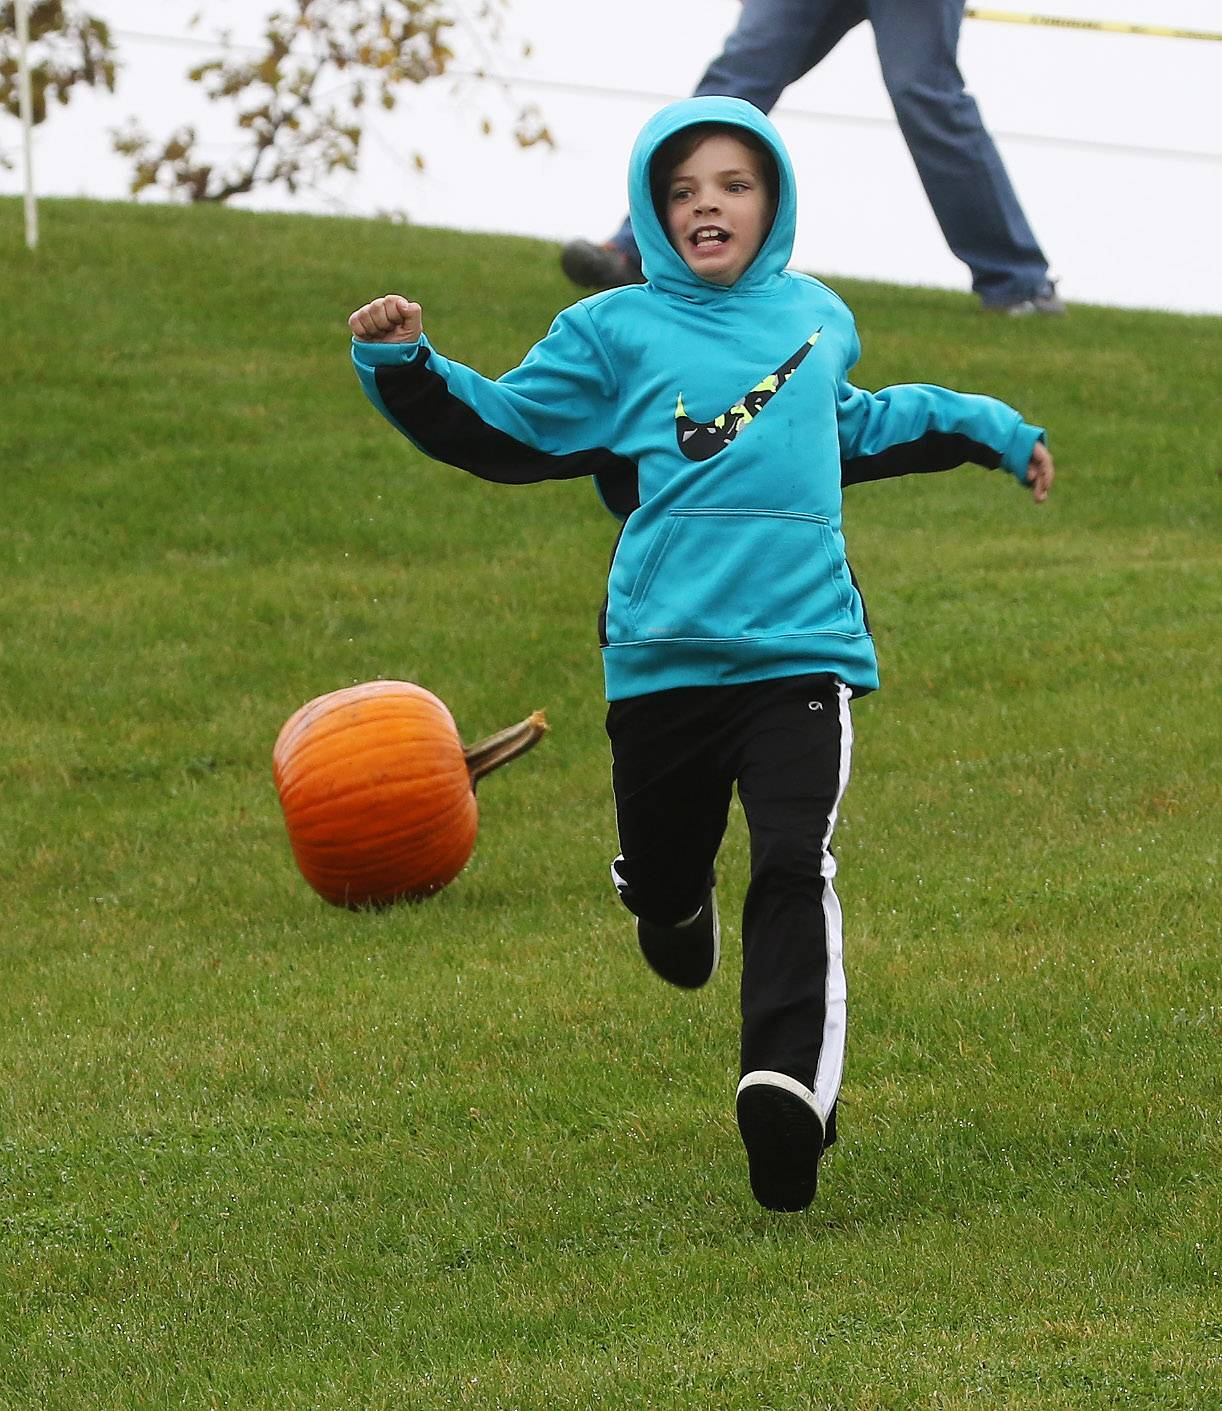 Michael Pacella, 8, of Mundelein is chased by the pumpkin that he started rolling down the sled hill at the Mundelein Community Center on Sunday. The traditional pumpkin roll and pumpkin catapult were canceled due to weather but kids took them up the sled hill on their own.